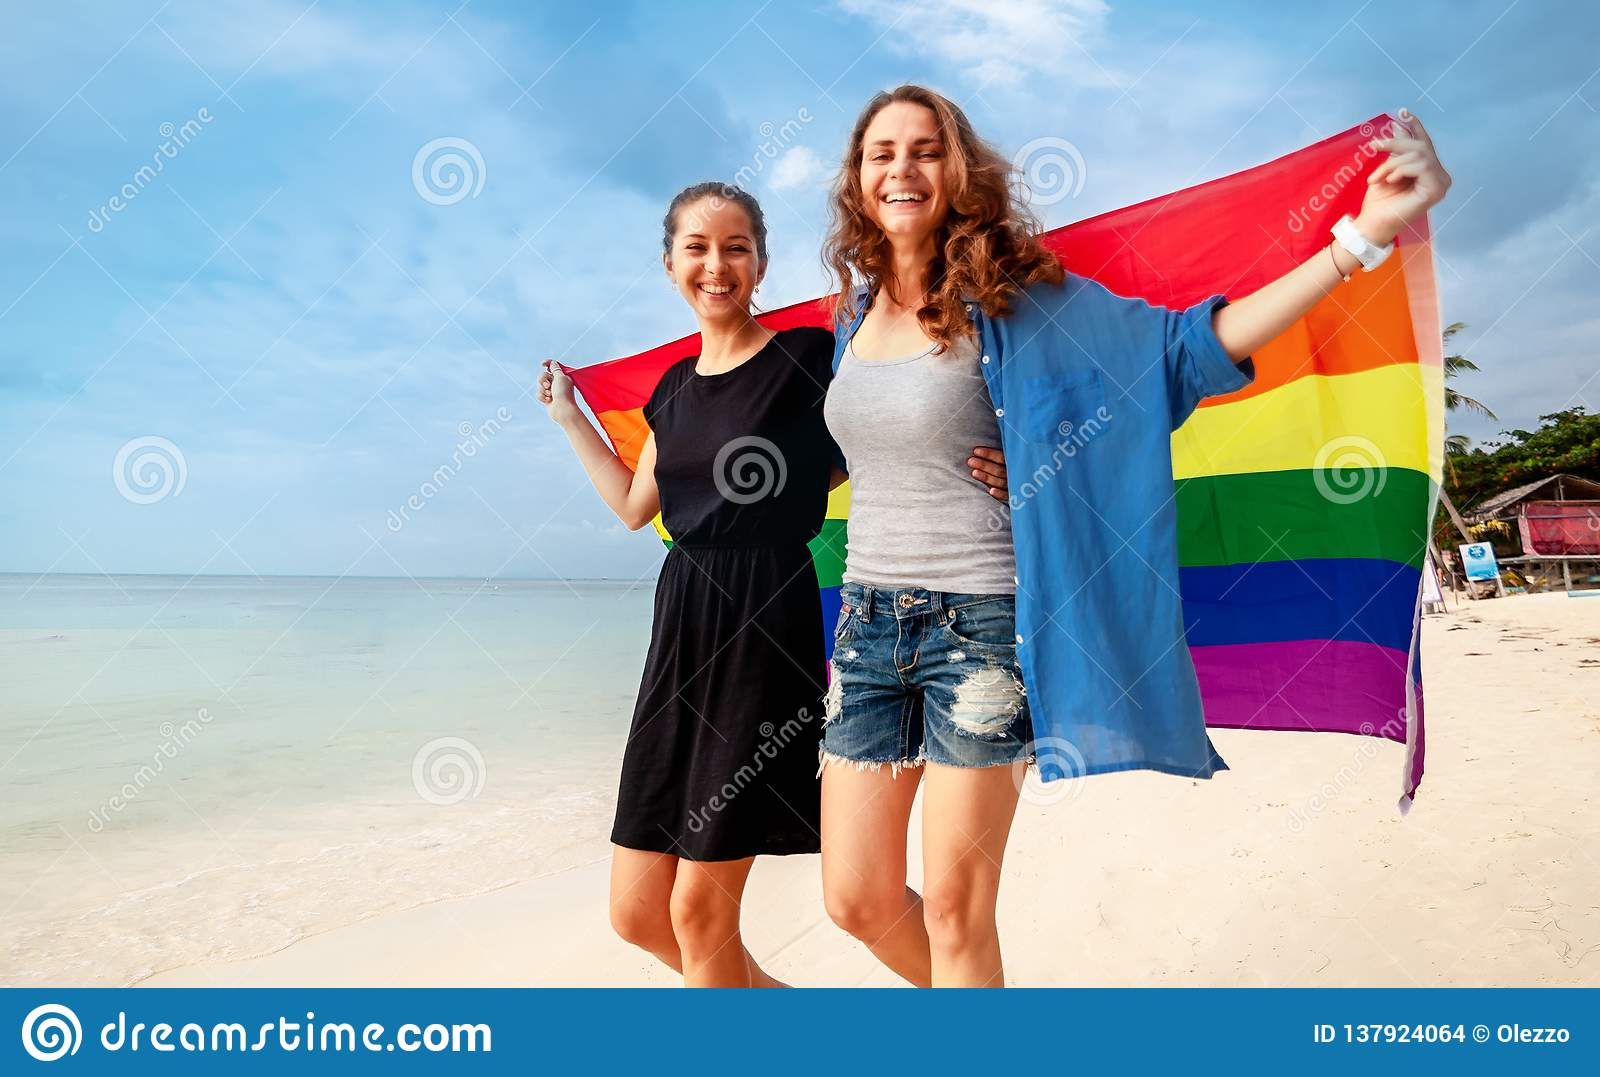 Beautiful female young lesbian couple in love walks along the beach with a rainbow flag, symbol of the LGBT community, equal